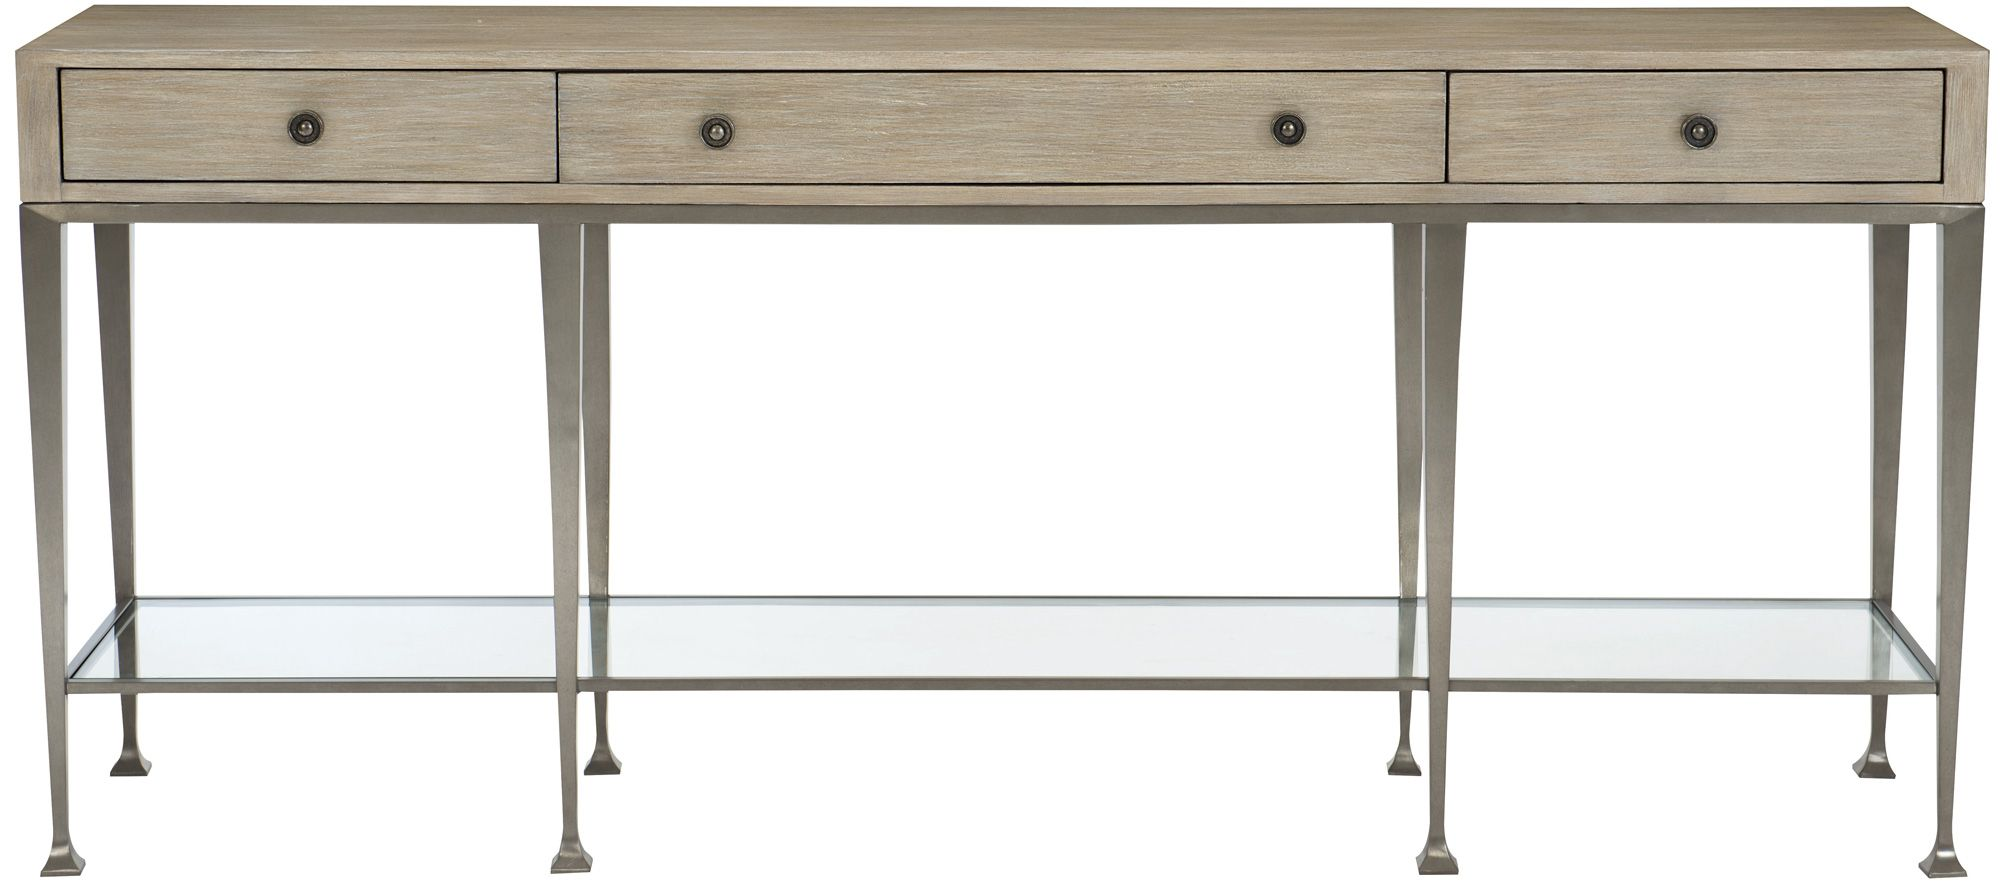 Design And High End Furniture New Products Console Table High